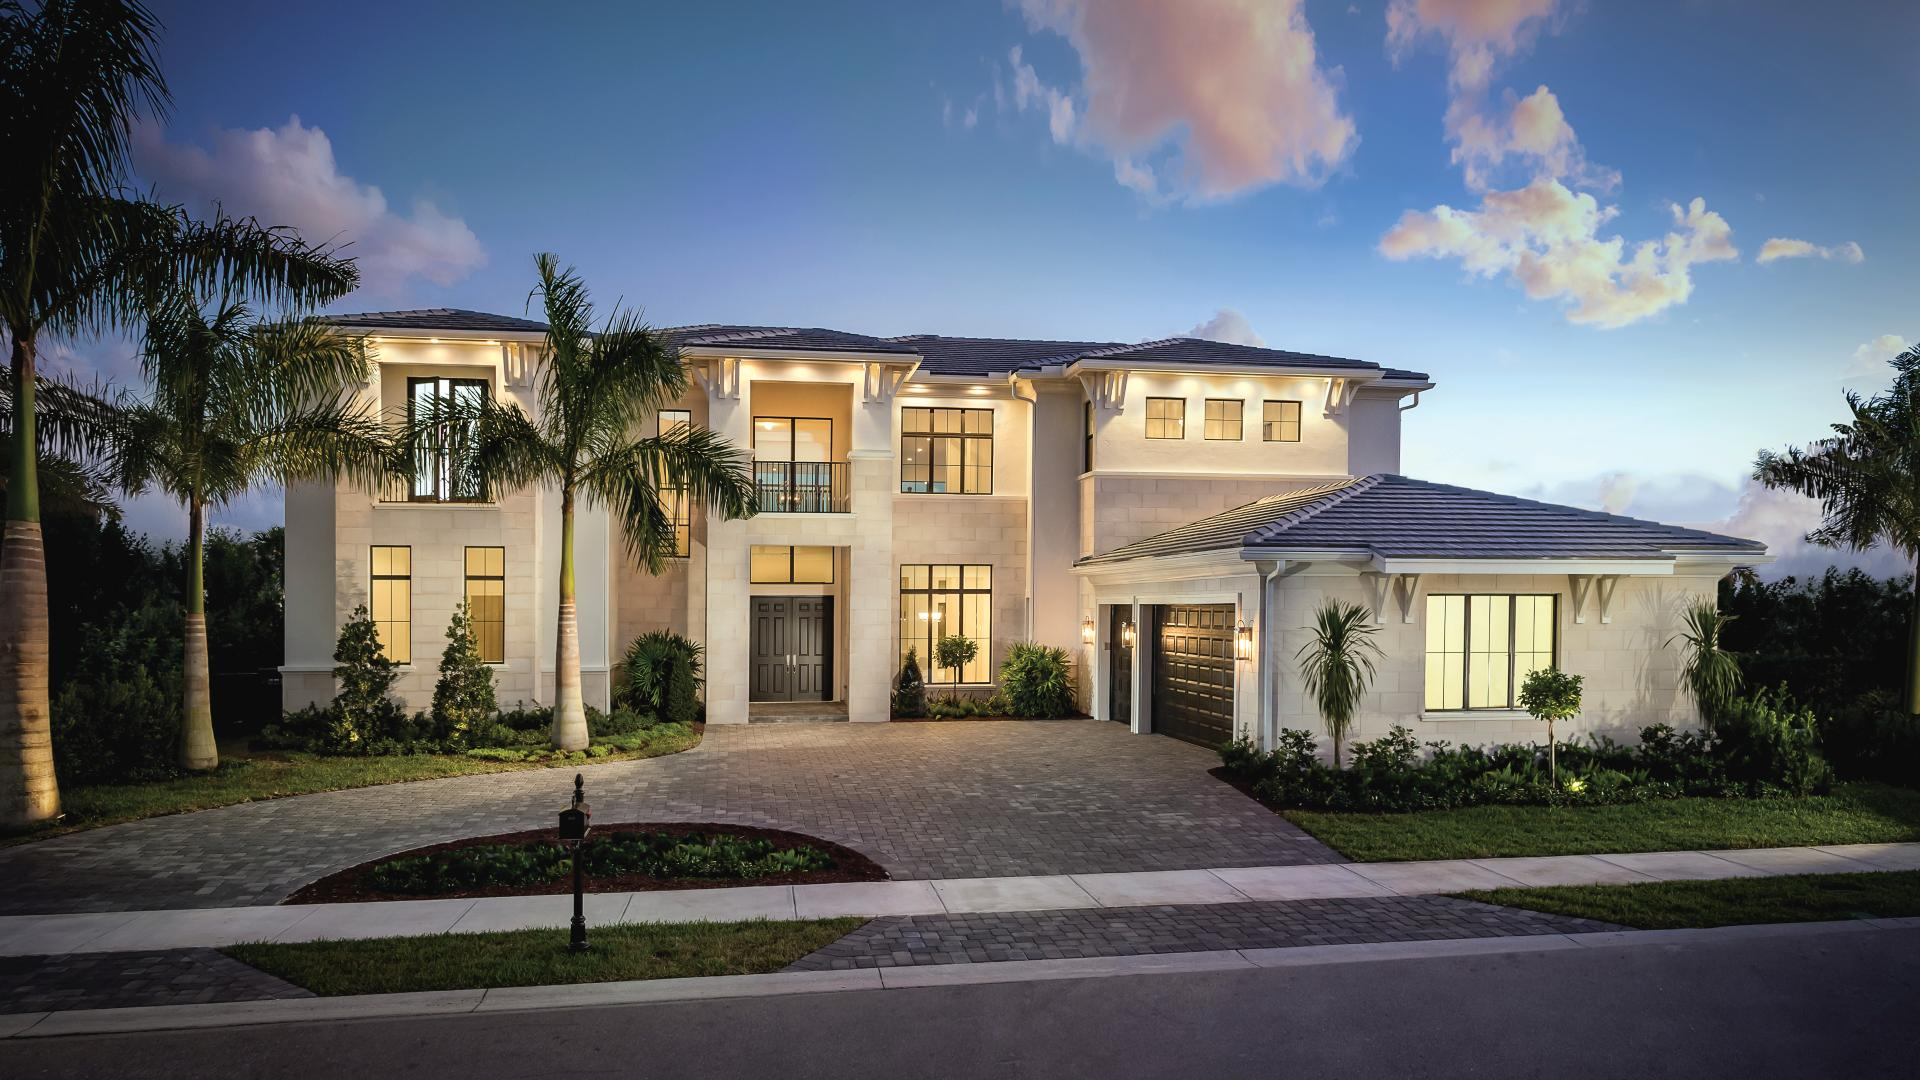 Luxury estate homes on oversized home sites